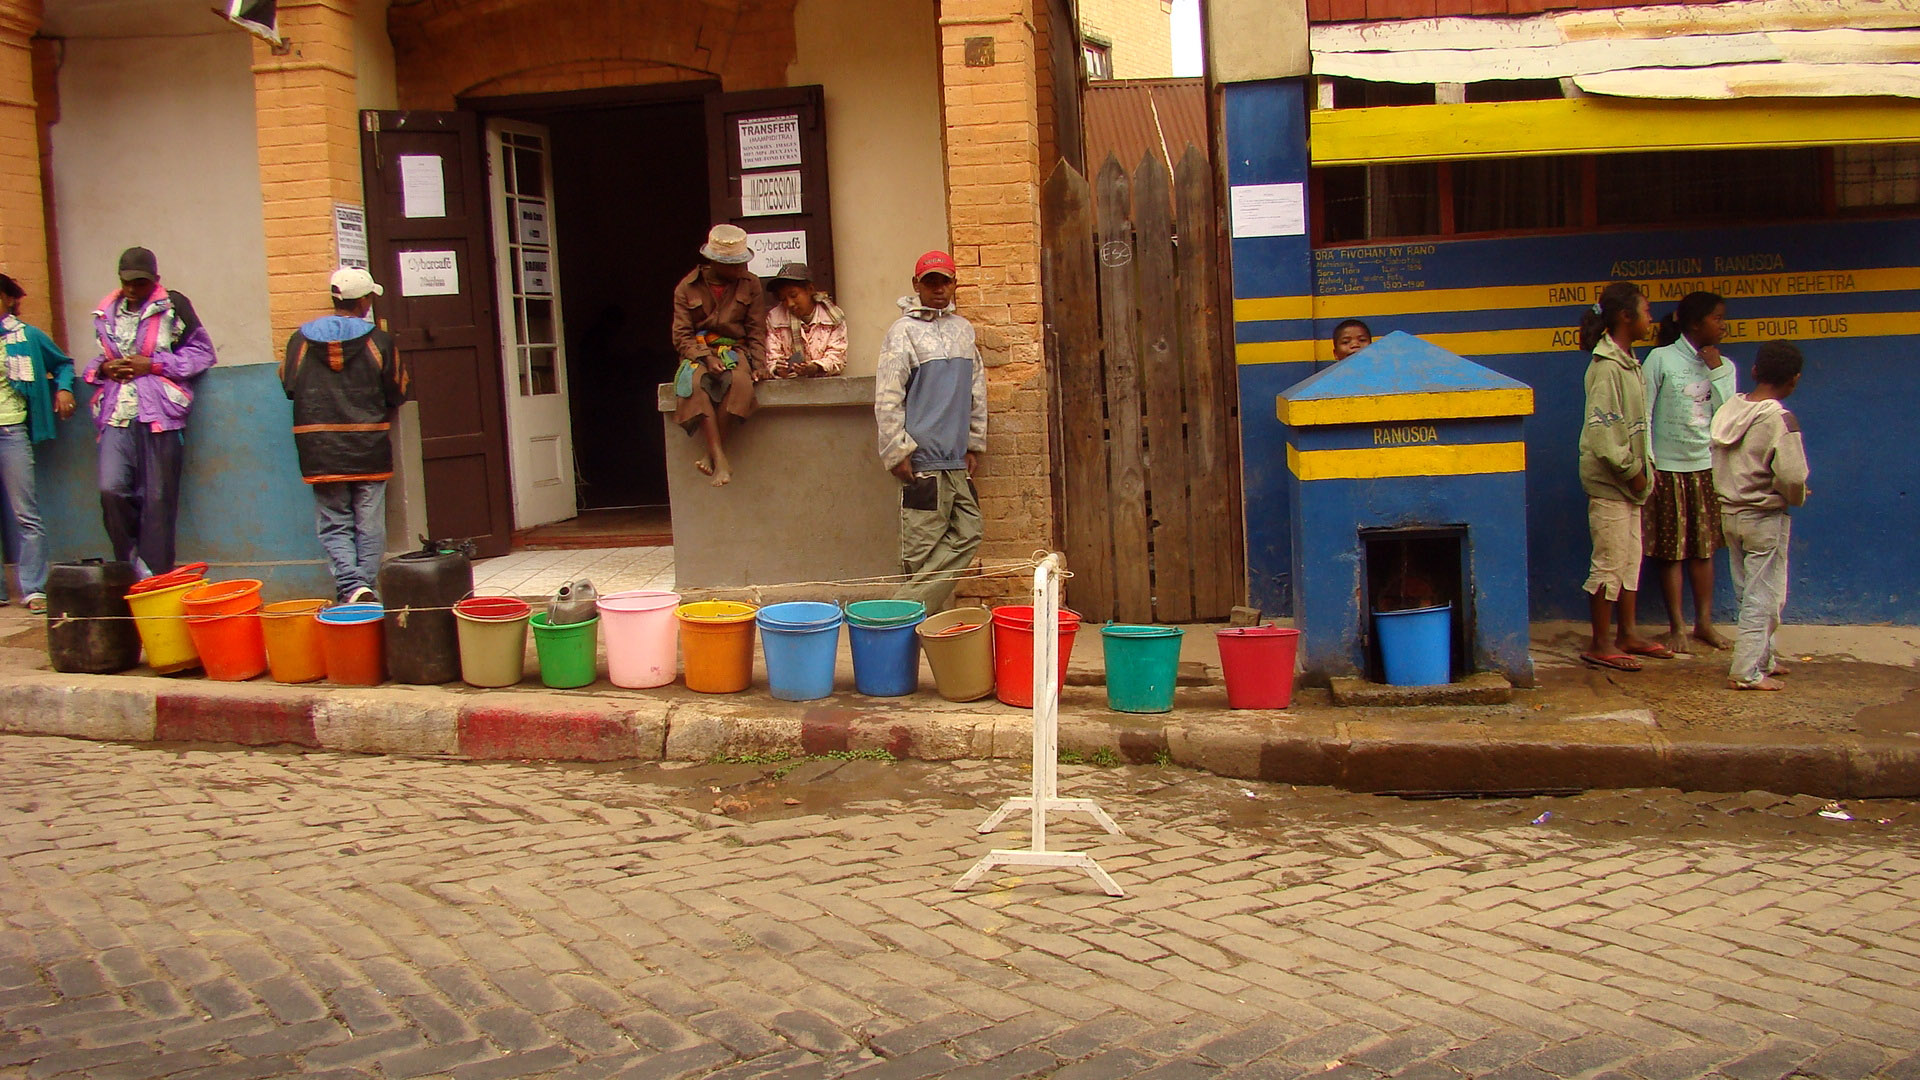 Queue at a public water dispenser in Antananarivo, the capital of Madagascar